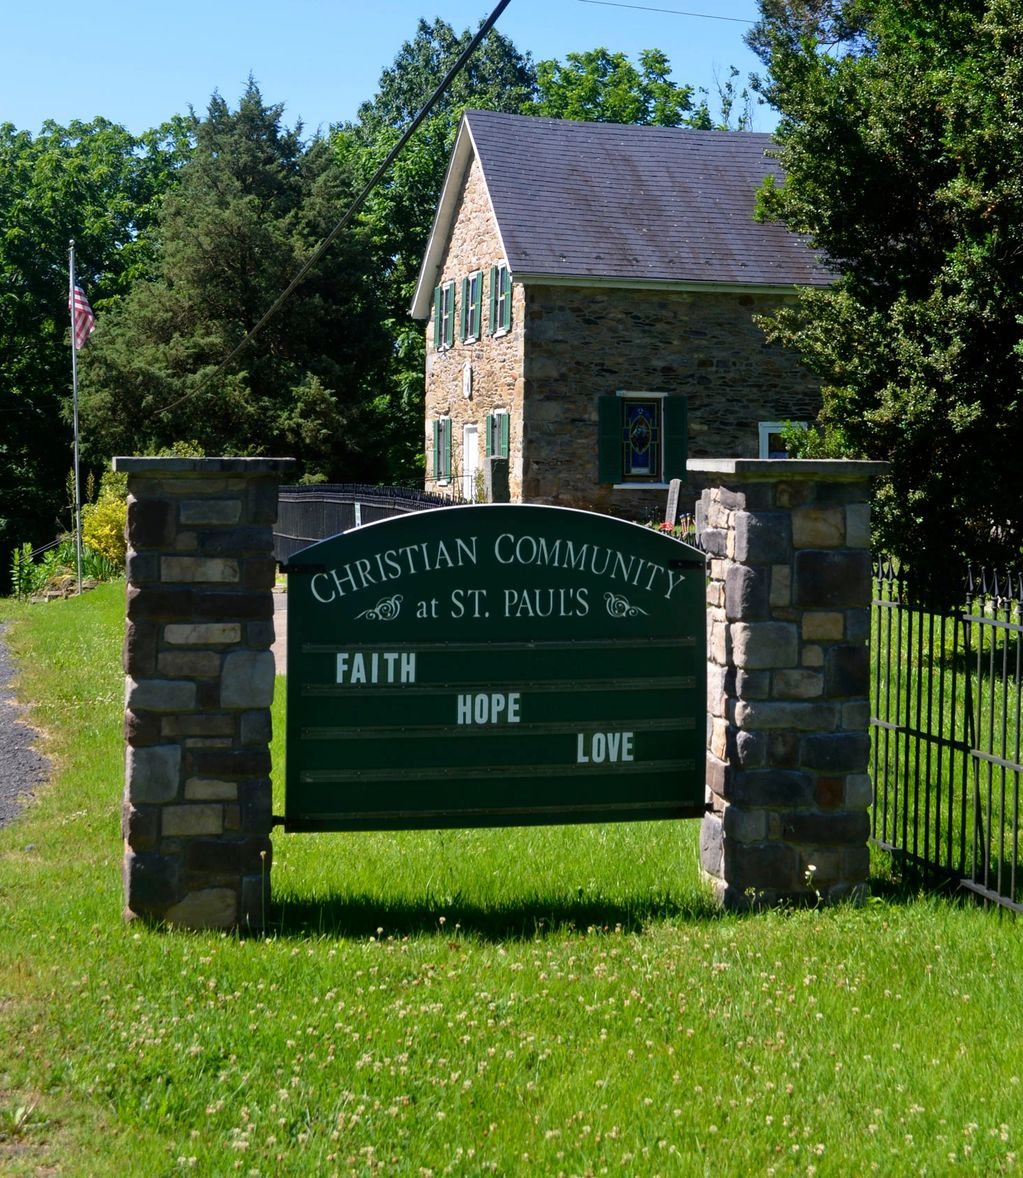 Faith, Hope, and Love sign  in front of the Christian Community Church at St. Paul's.